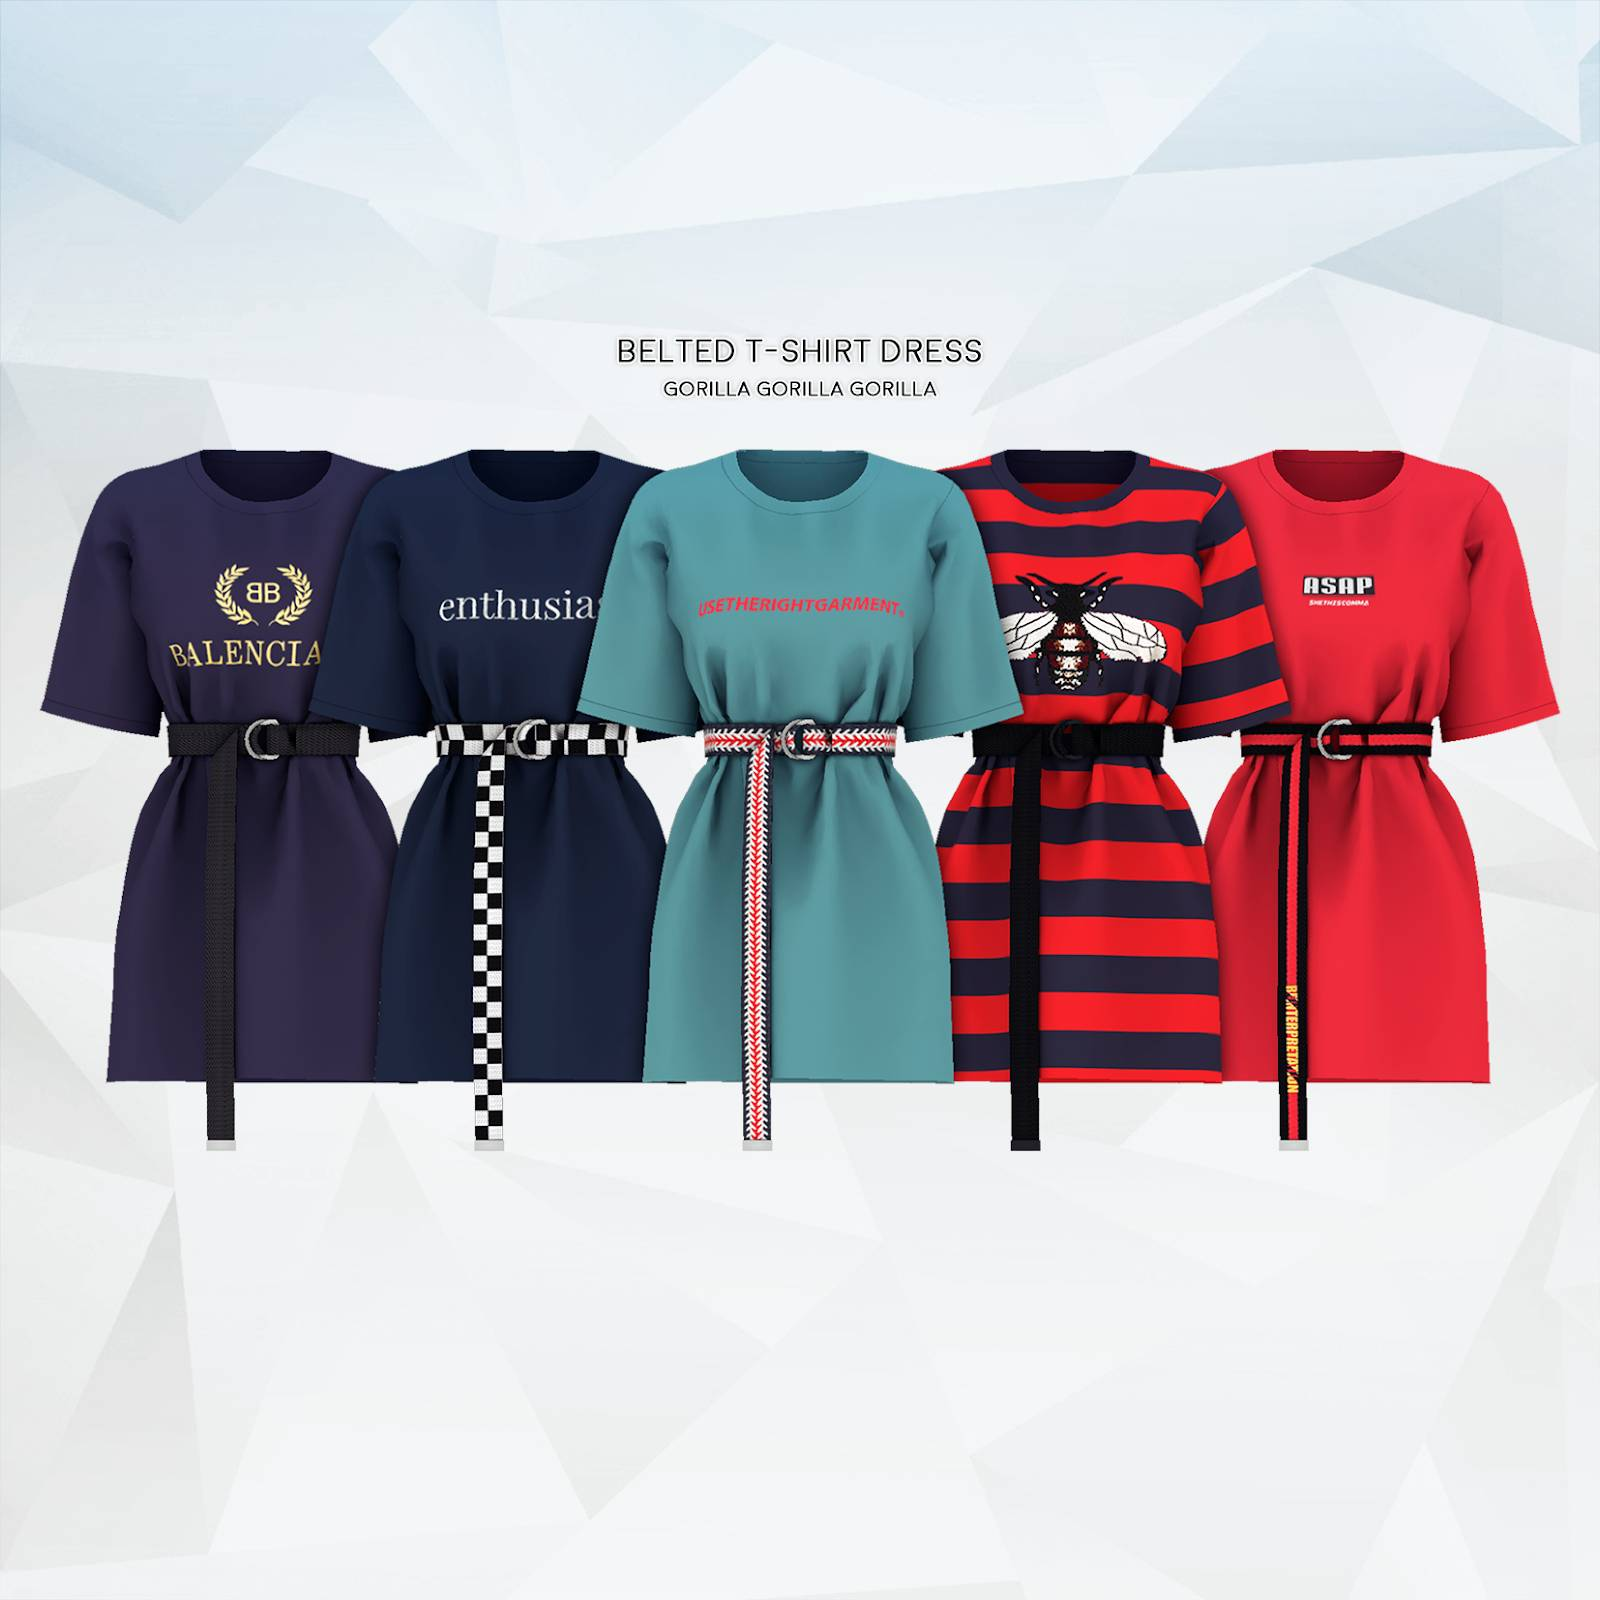 Платье - Belted T-Shirt Dress